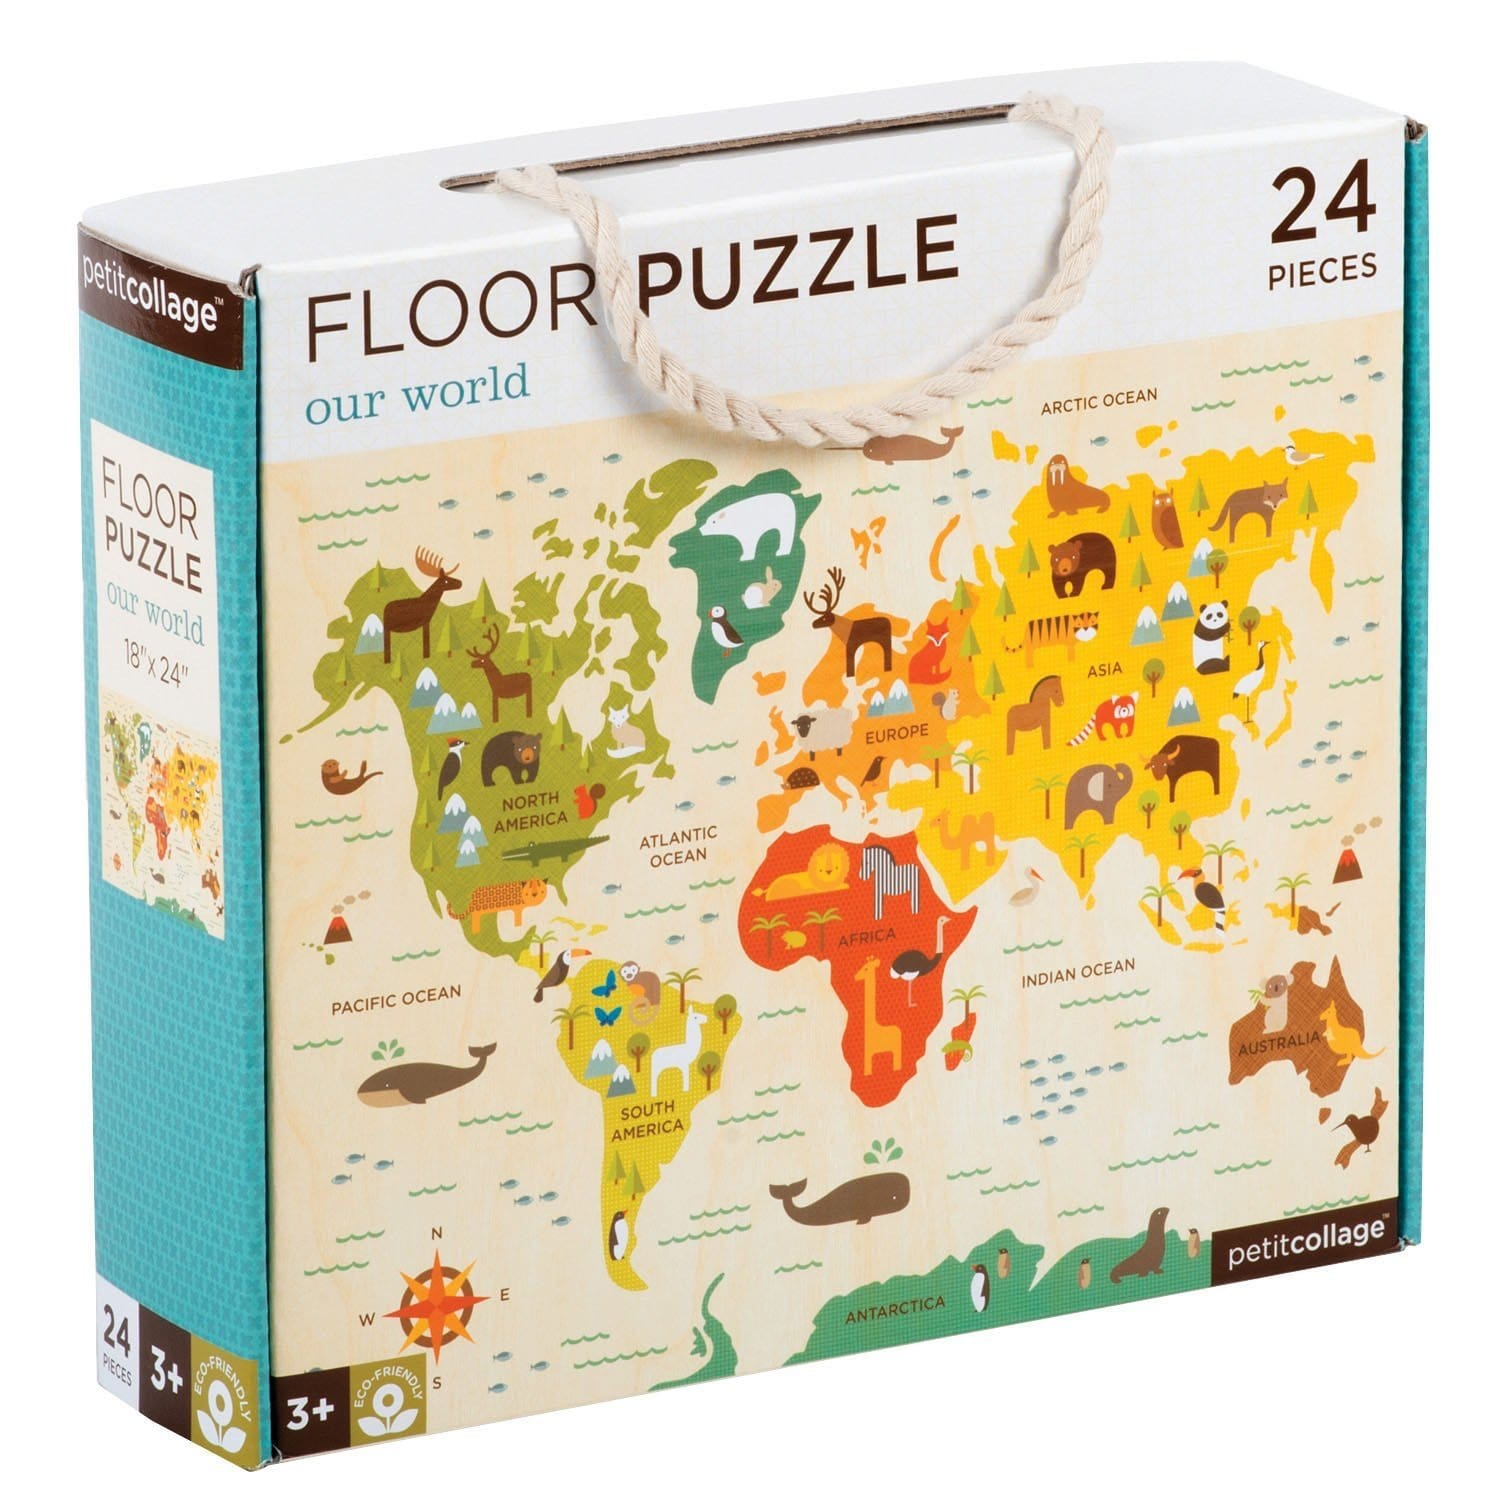 FLOOR PUZZLE : OUR WORLD